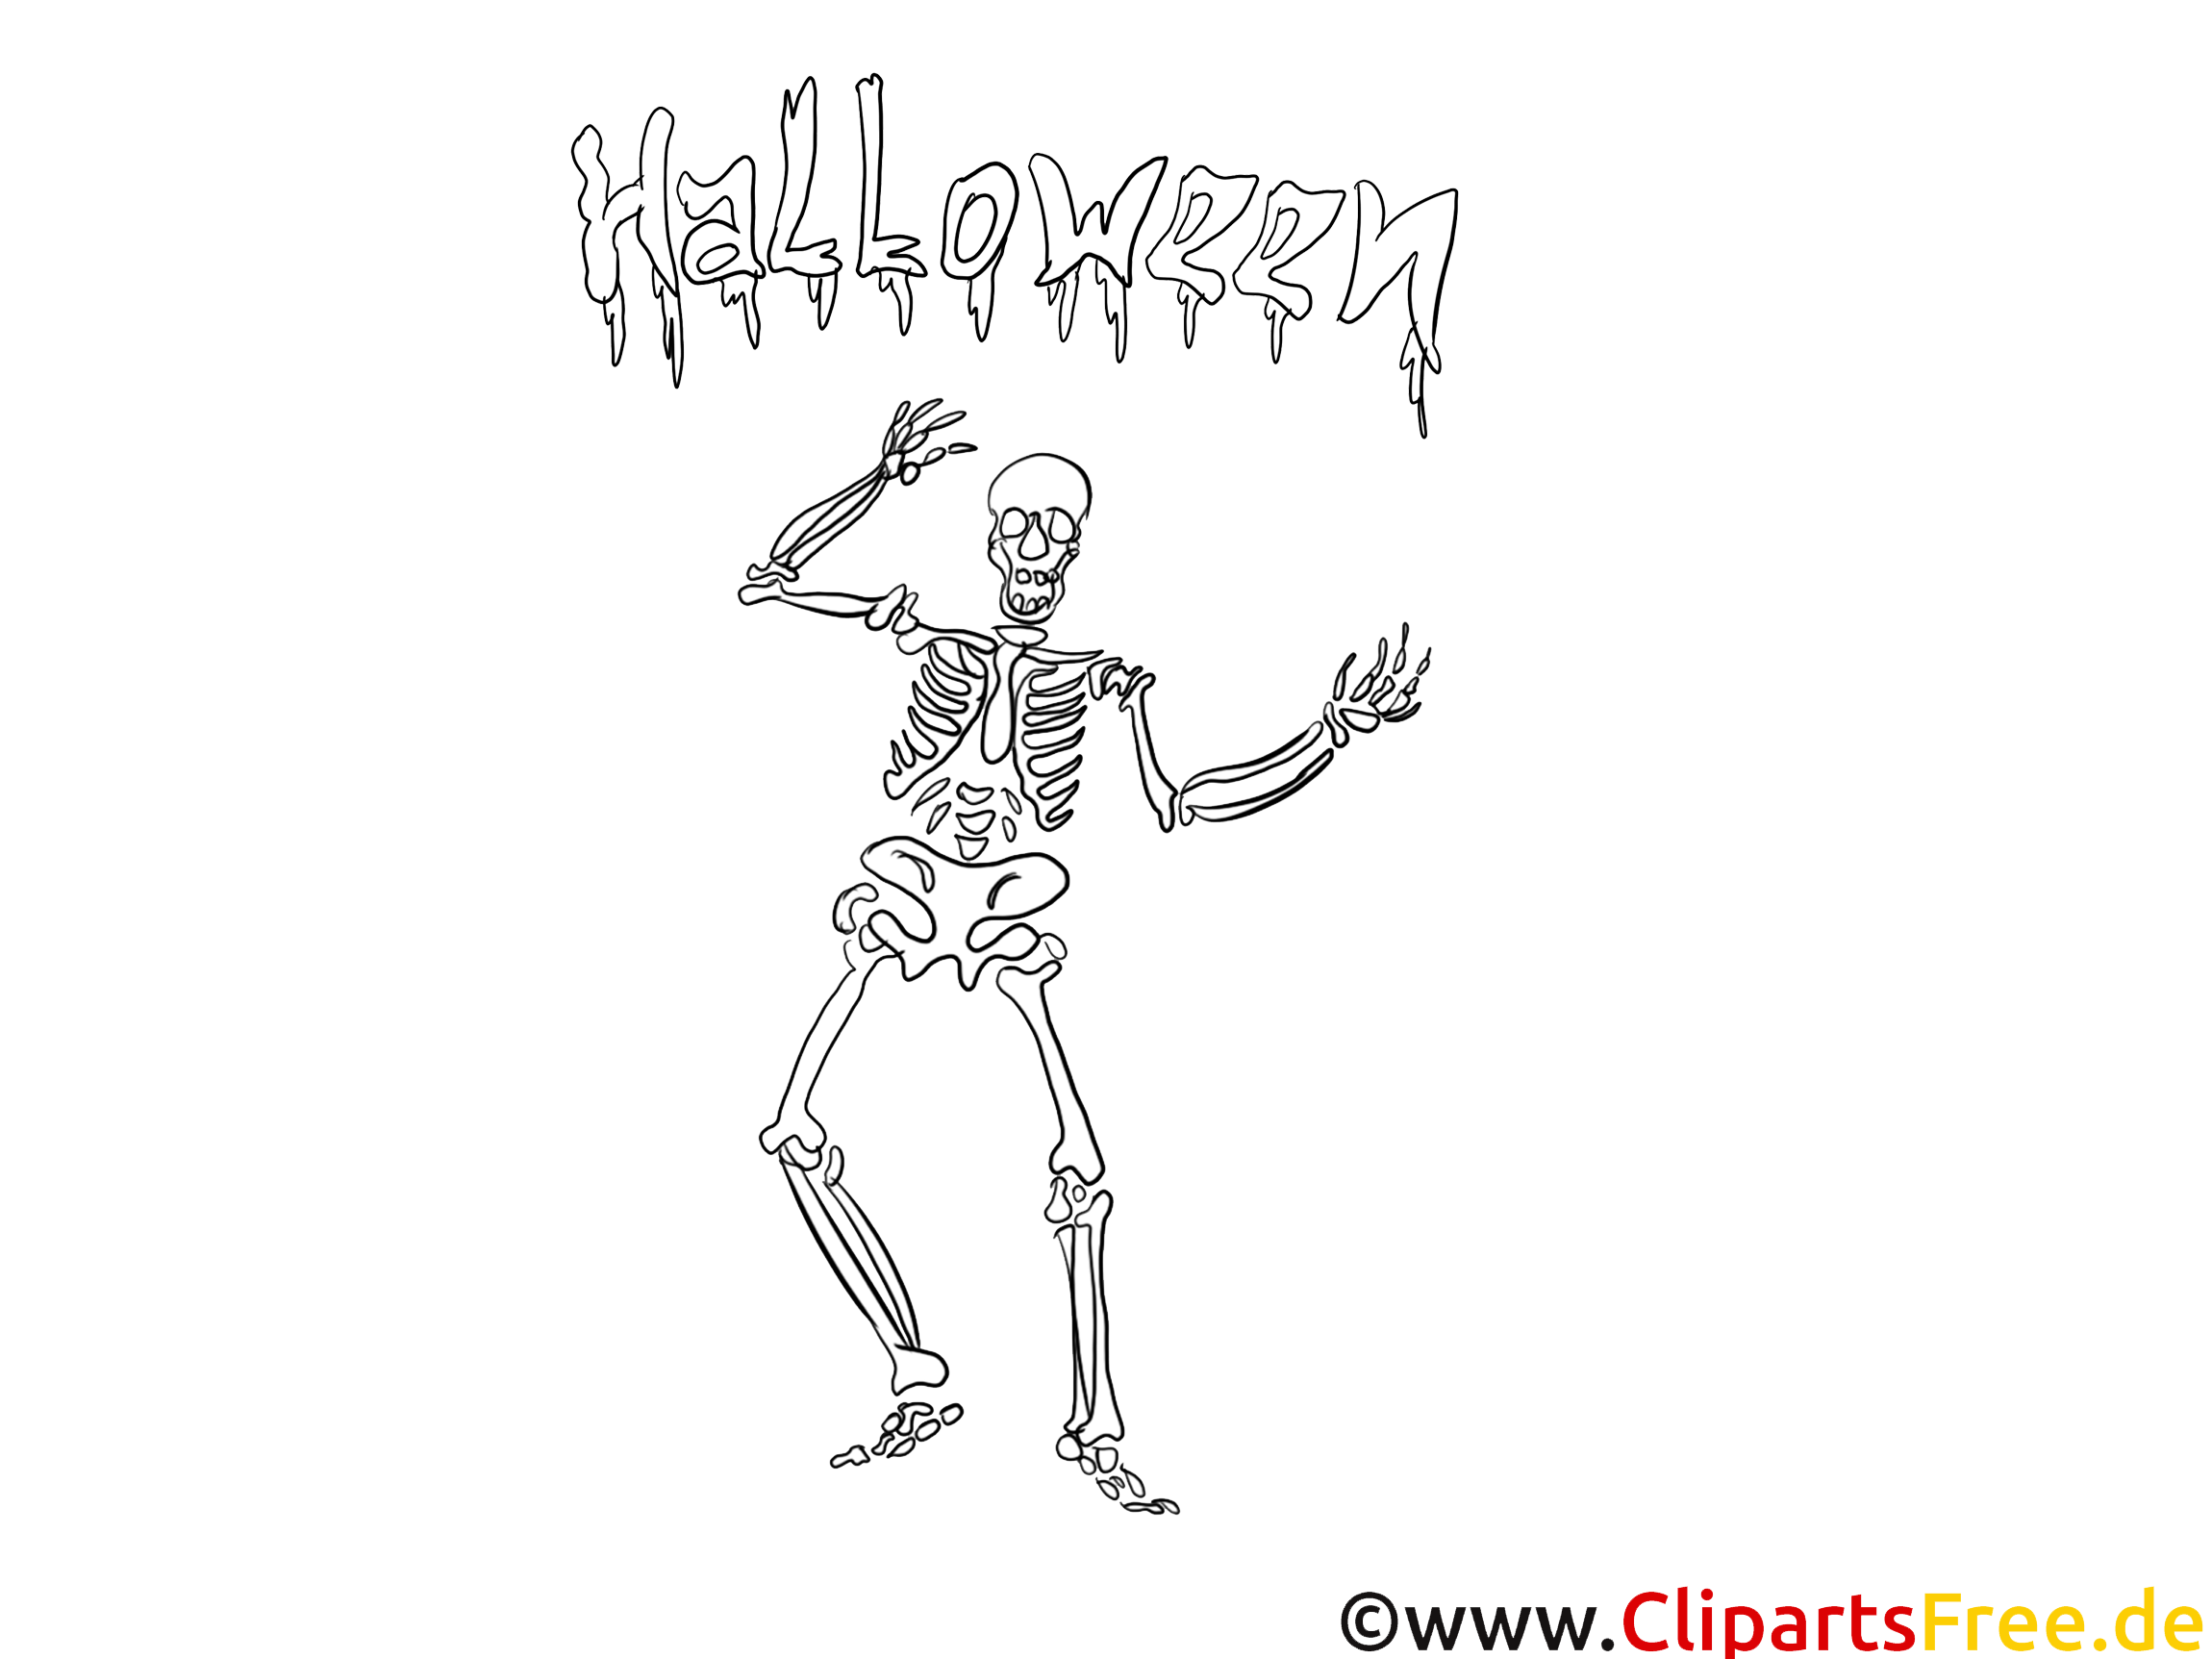 Squelette clipart halloween dessins colorier halloween coloriages dessin picture image - Squelette a colorier ...